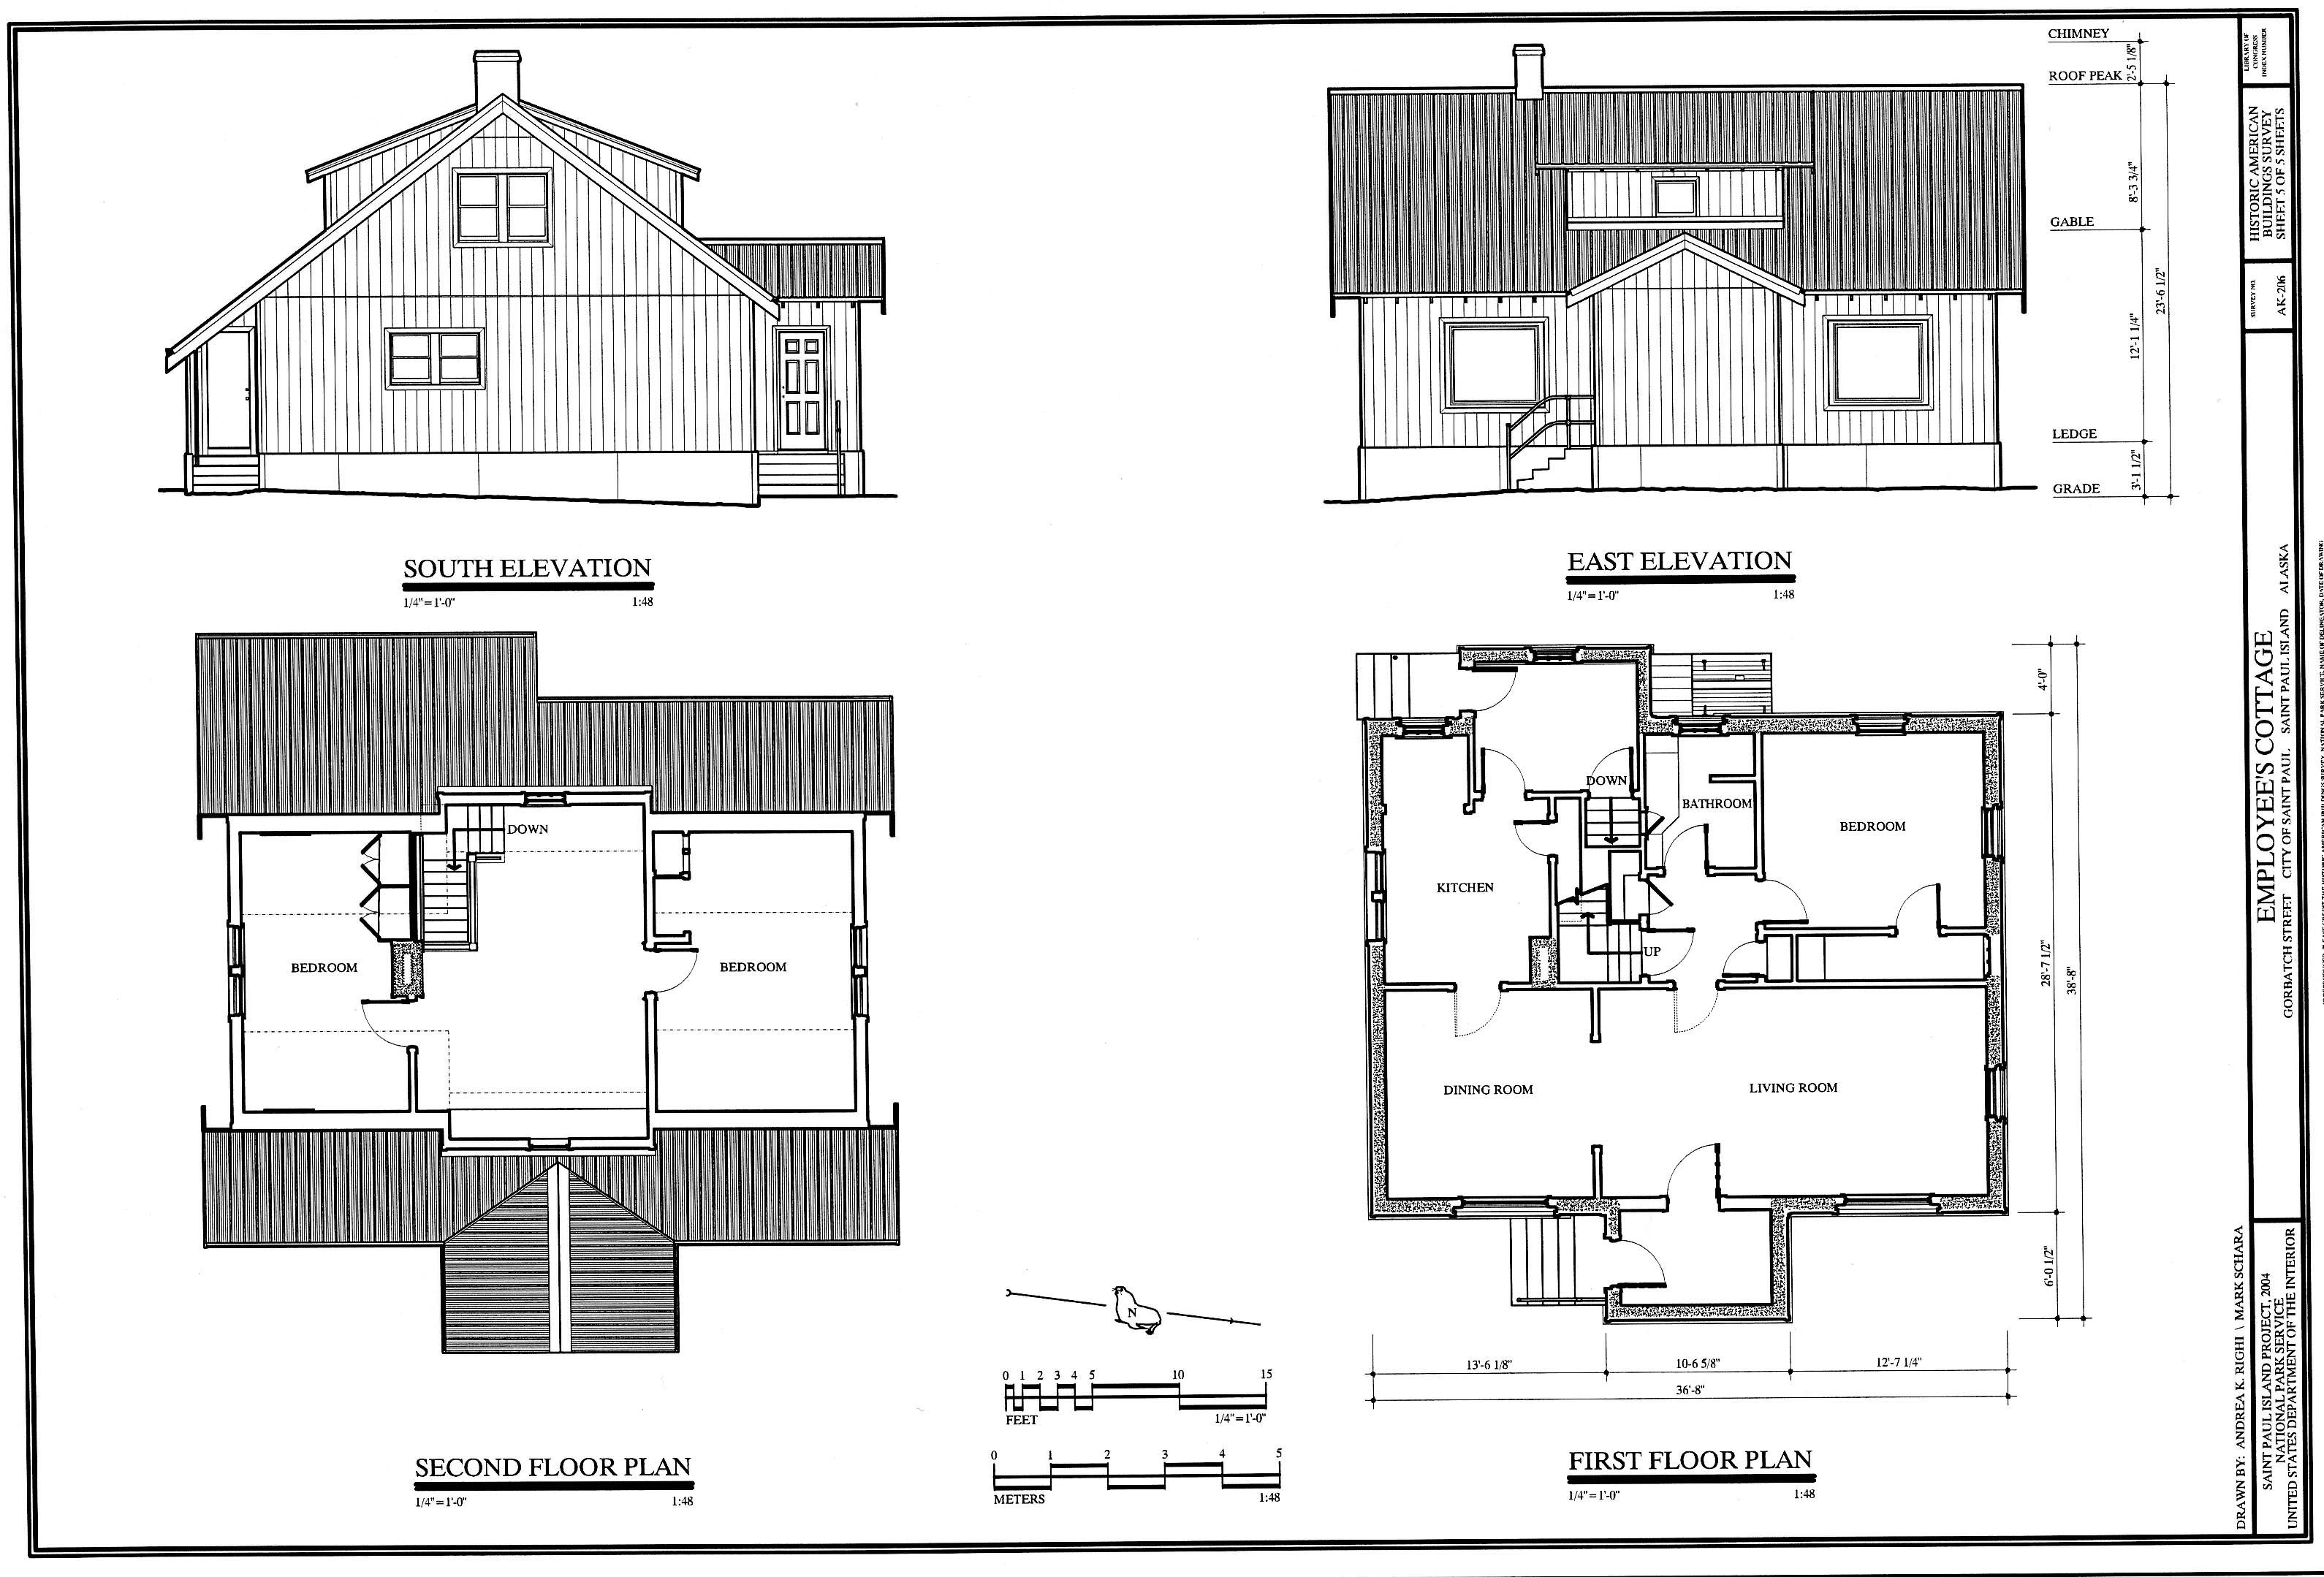 draw house plans drawing tiny layout the hinesburg cape sqft bedroom bath  next. draw house plans drawing tiny layout the hinesburg cape sqft